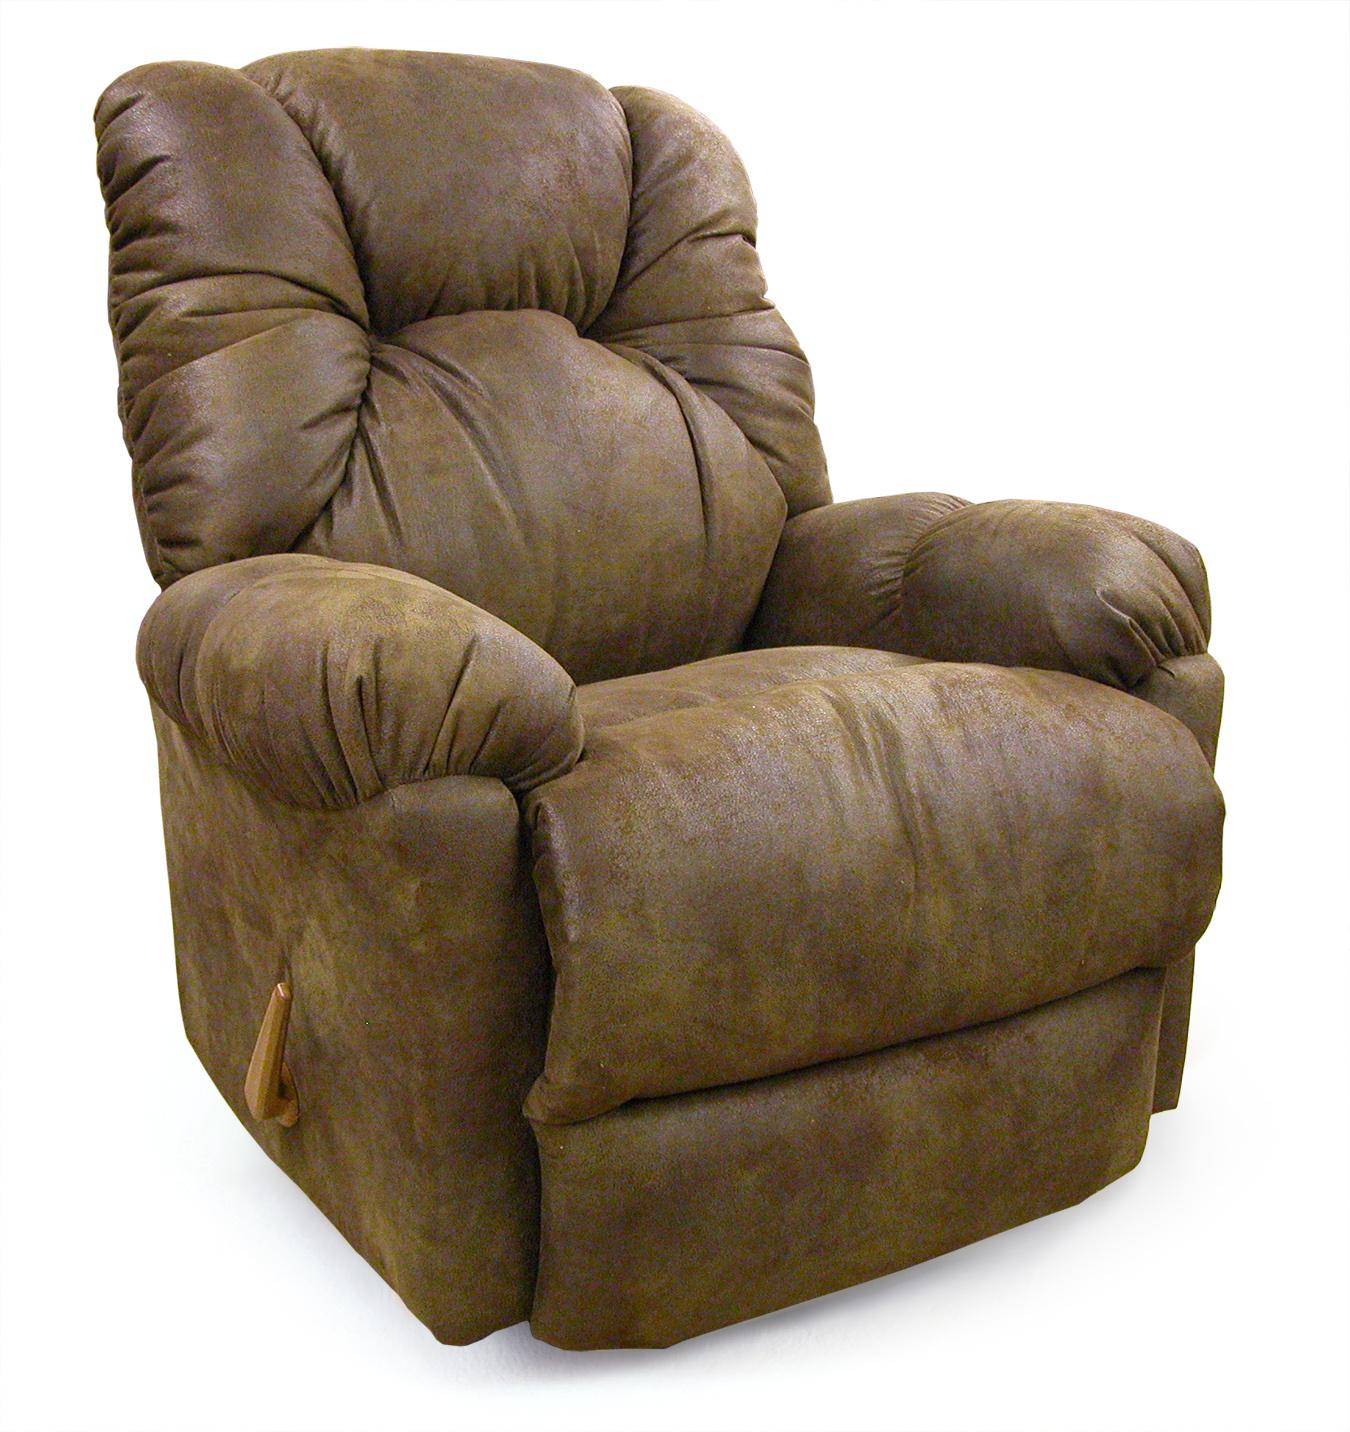 Best Home Furnishings Recliners - Medium Romulus Swivel Glider Recliner - Item Number: 9MW55